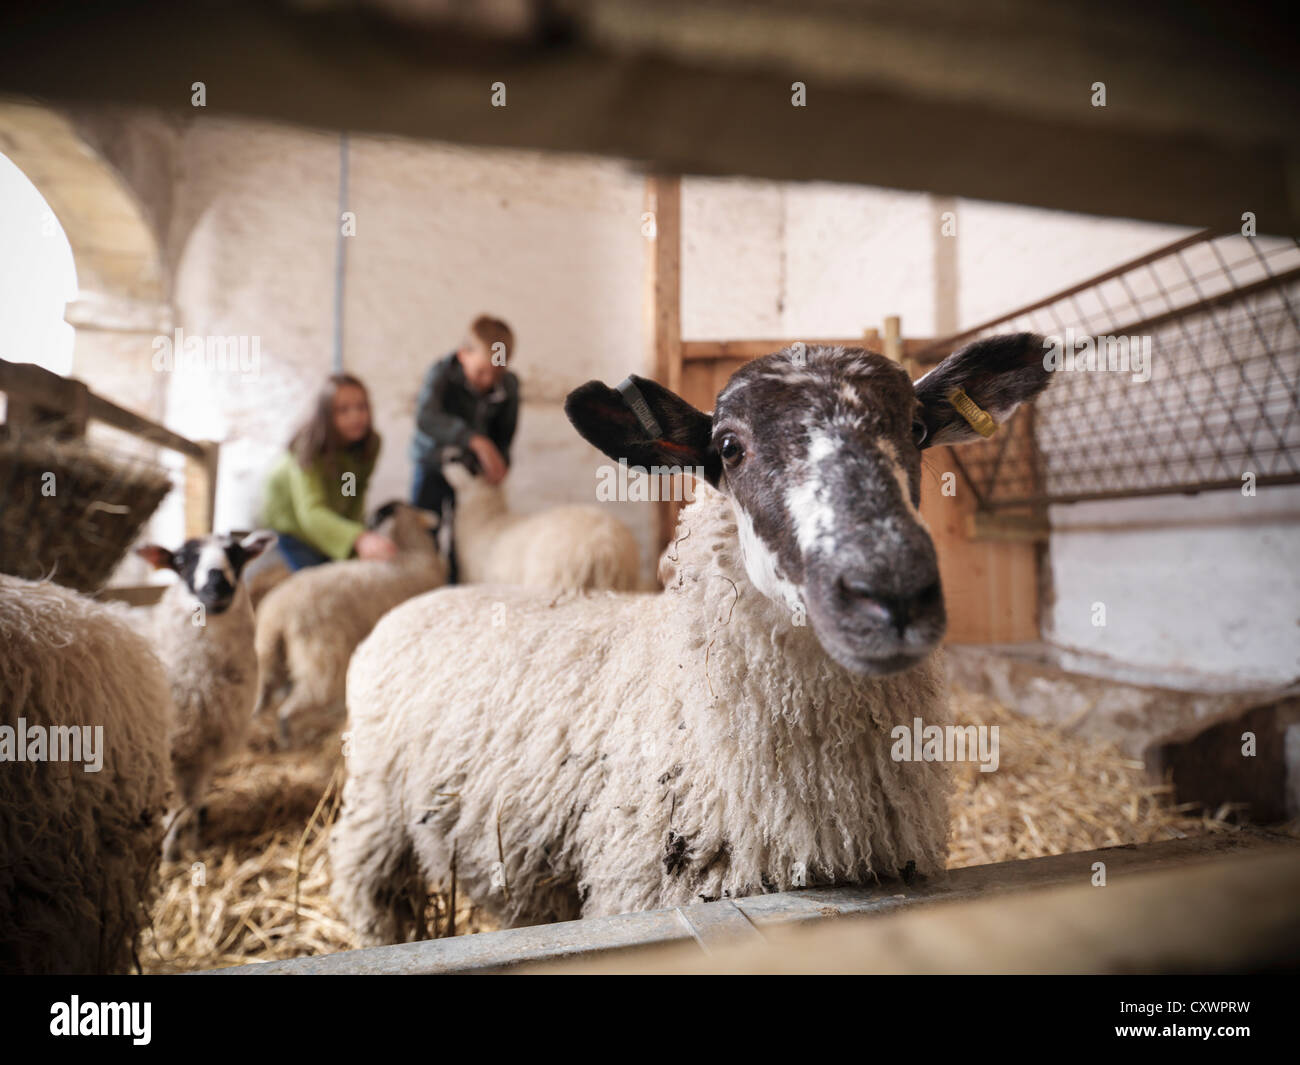 Close up of sheep in barn - Stock Image